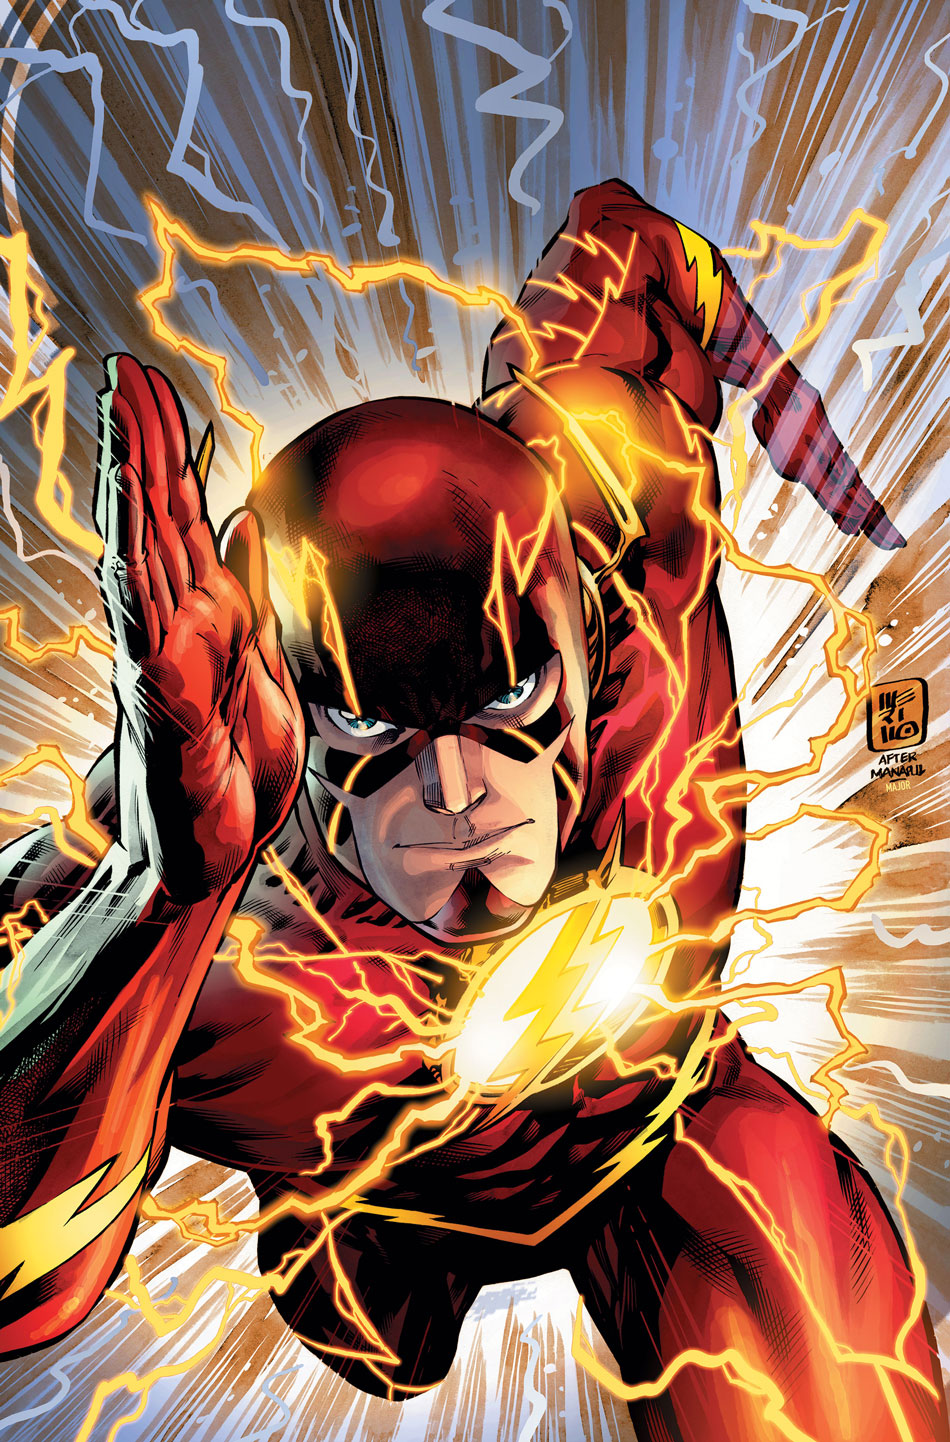 The Flash #52 variant cover by Jesus Merino